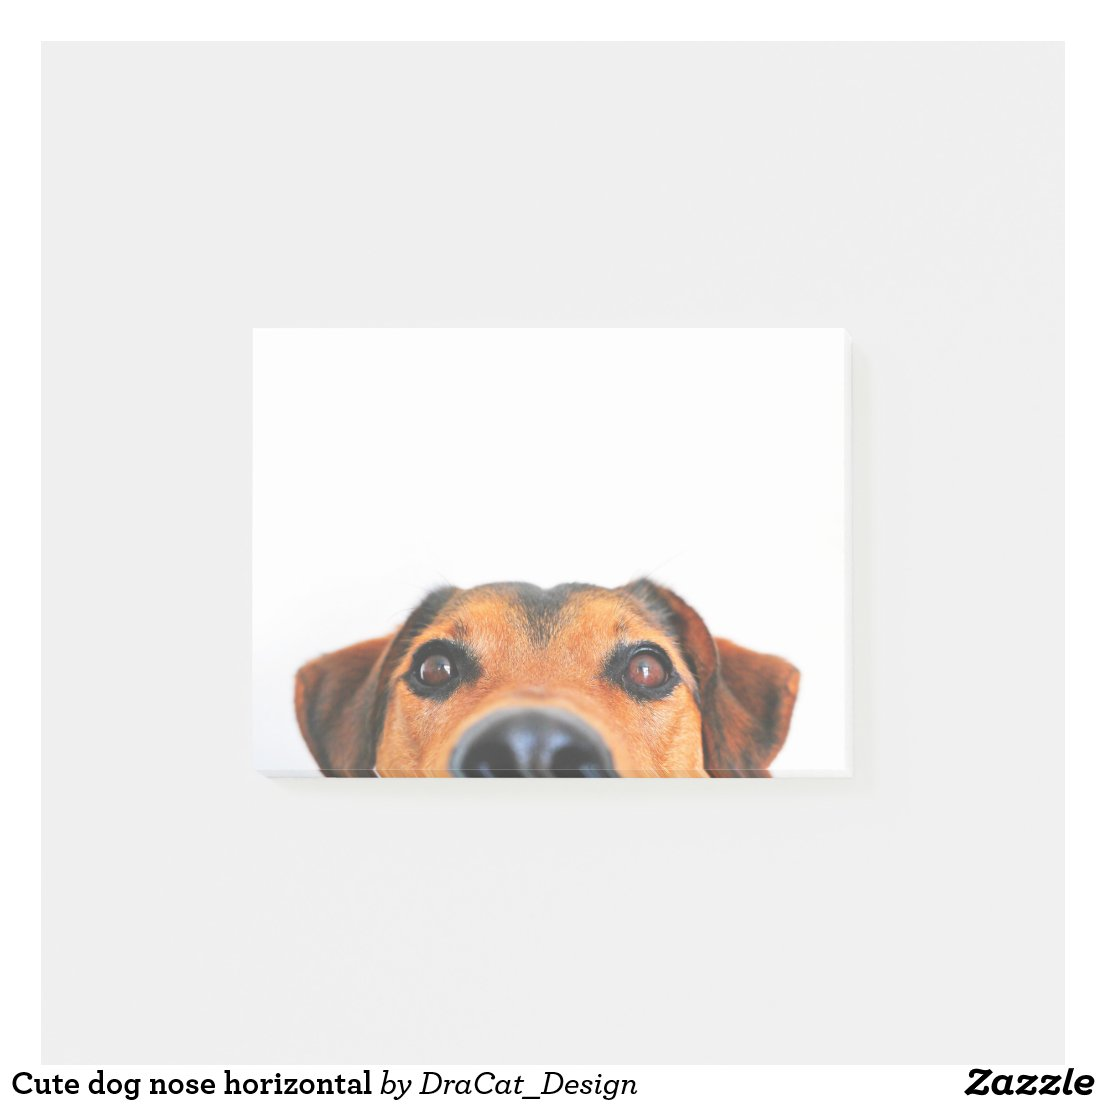 Cute dog nose horizontal post-it notes